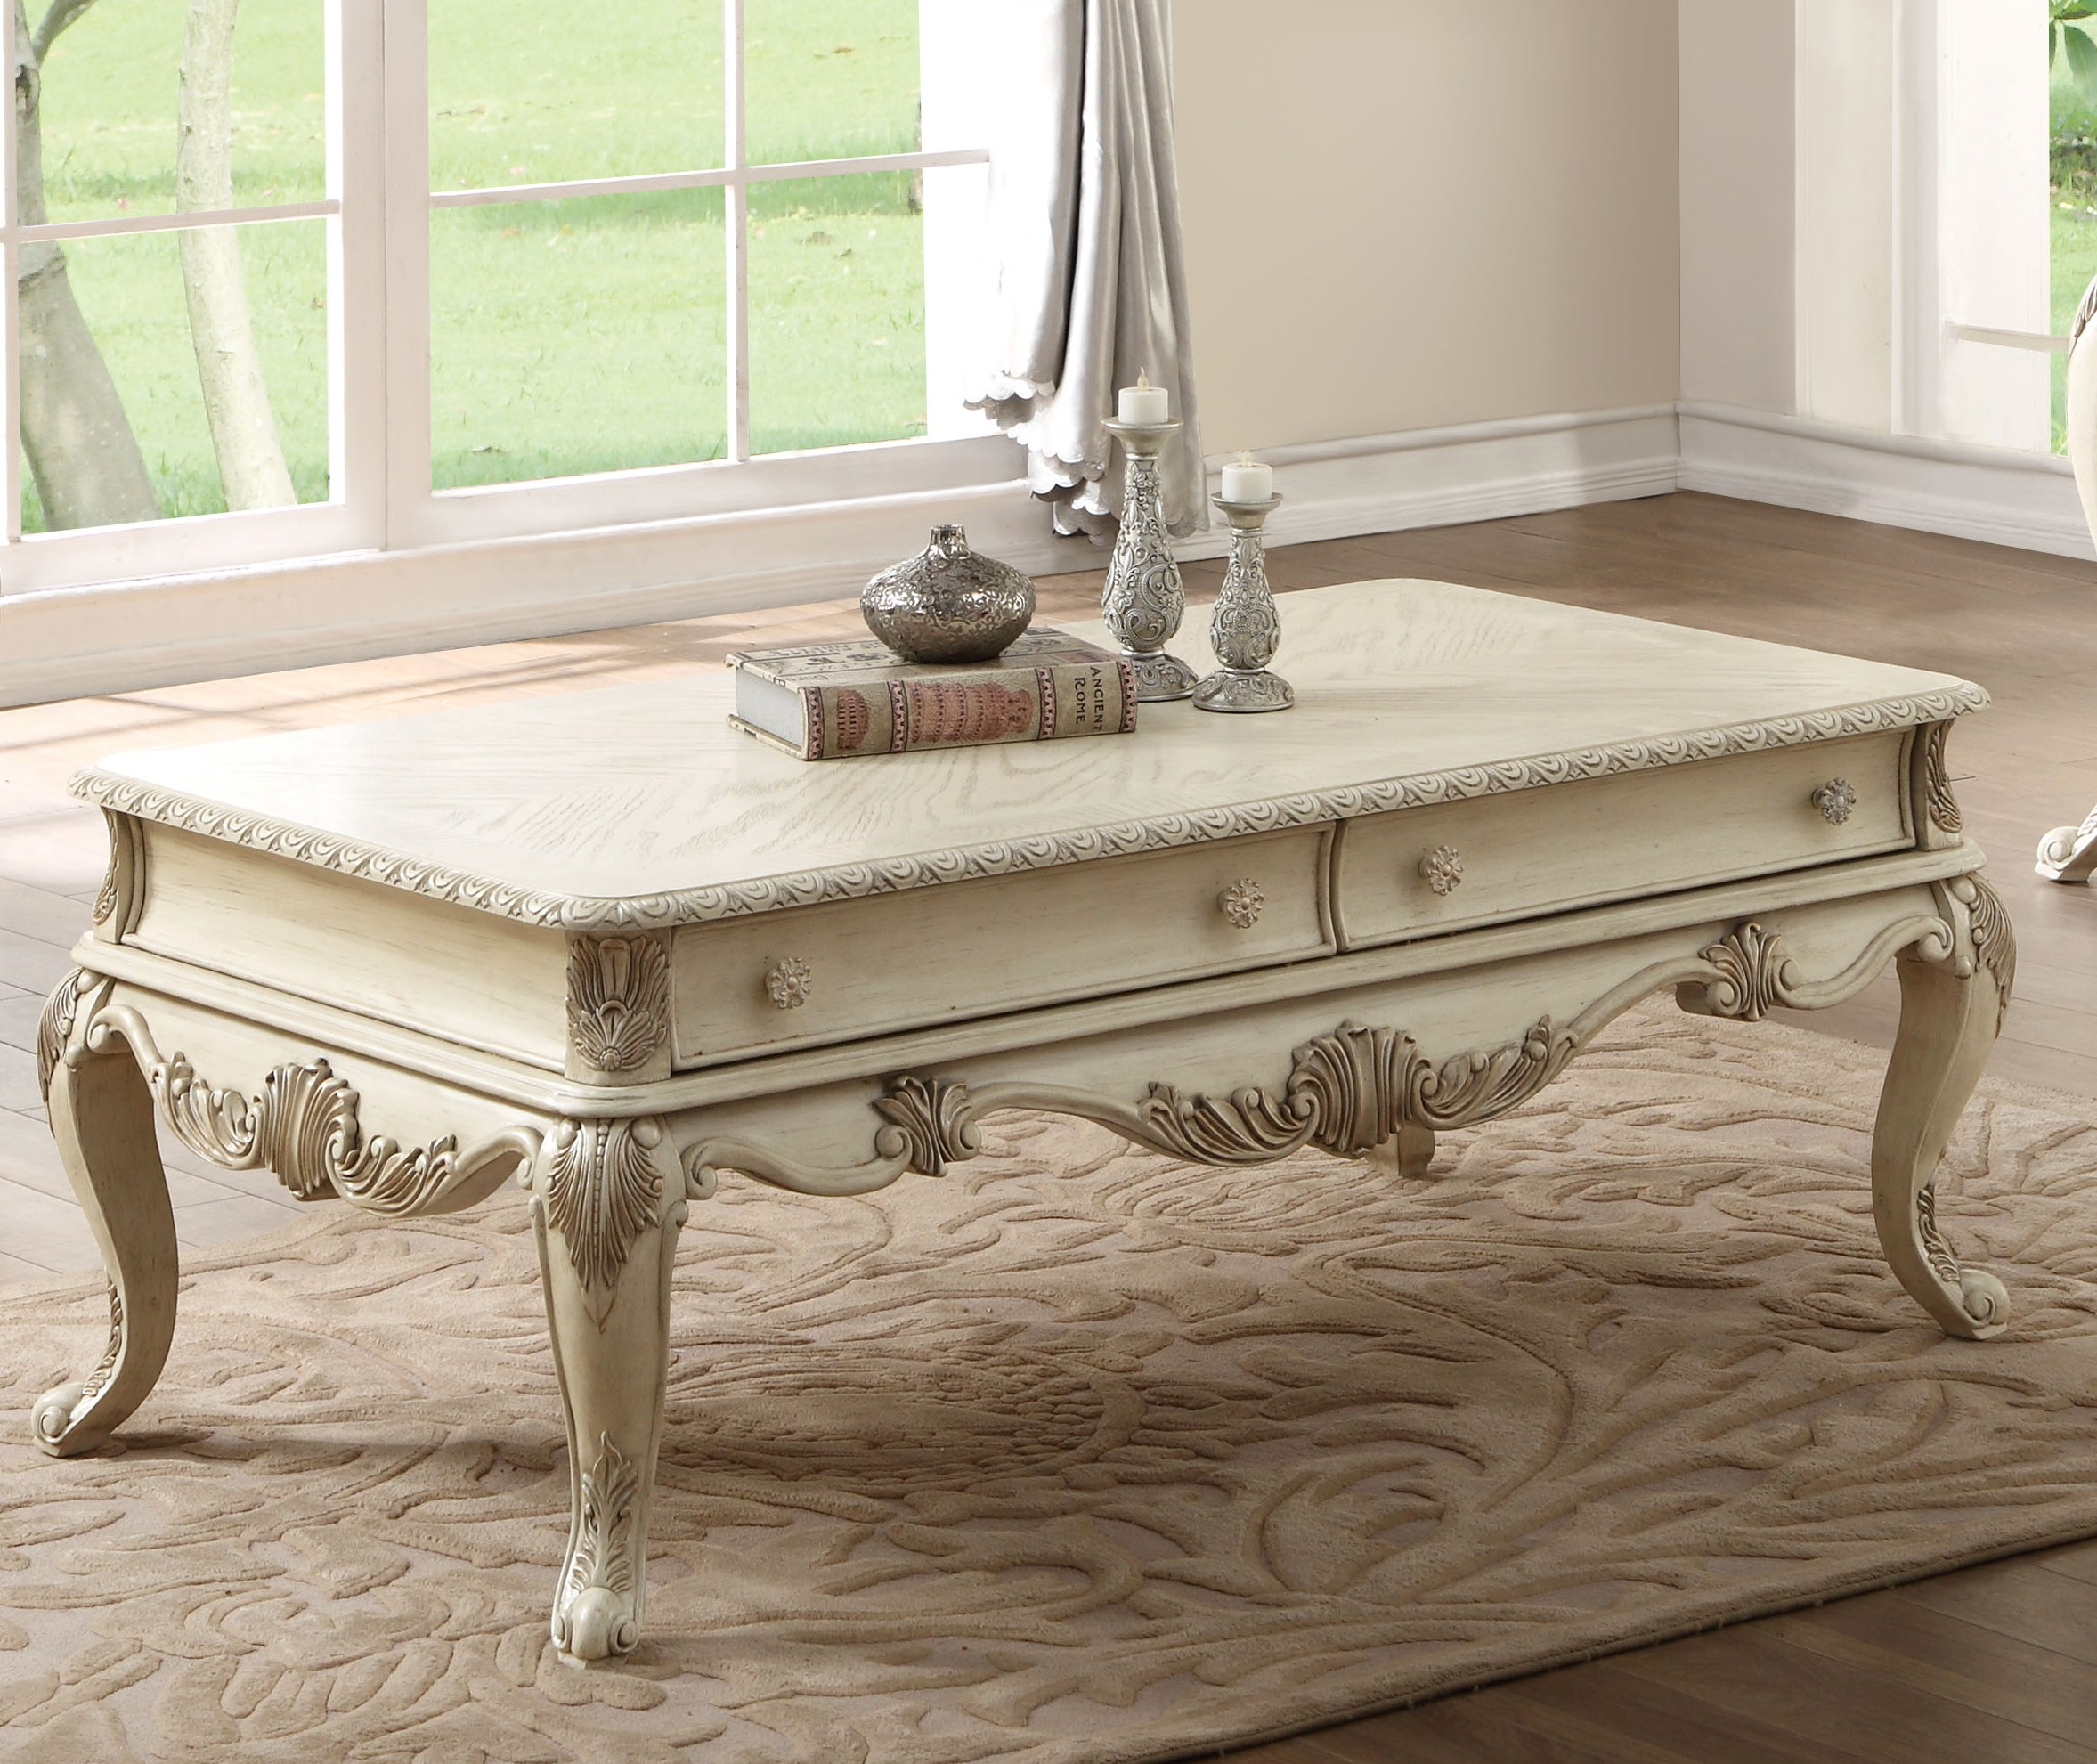 Acme Furniture Ragenardus Antique White Coffee Table The Classy Home